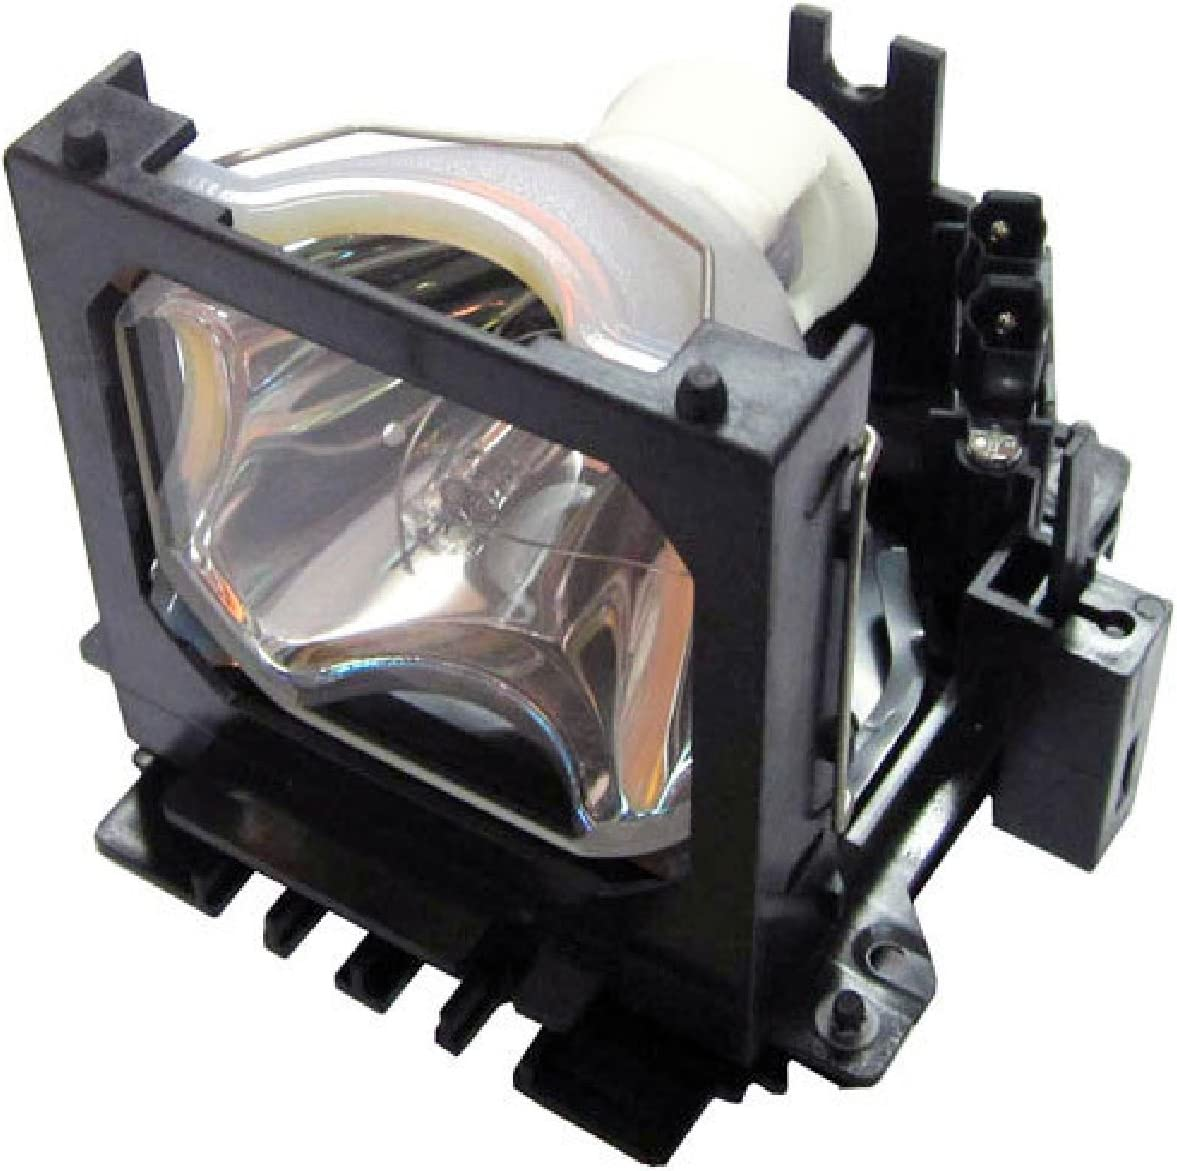 Amazing Lamps 78-6969-9601-2 Factory Original Bulb in Compatible Housing for 3M Projectors